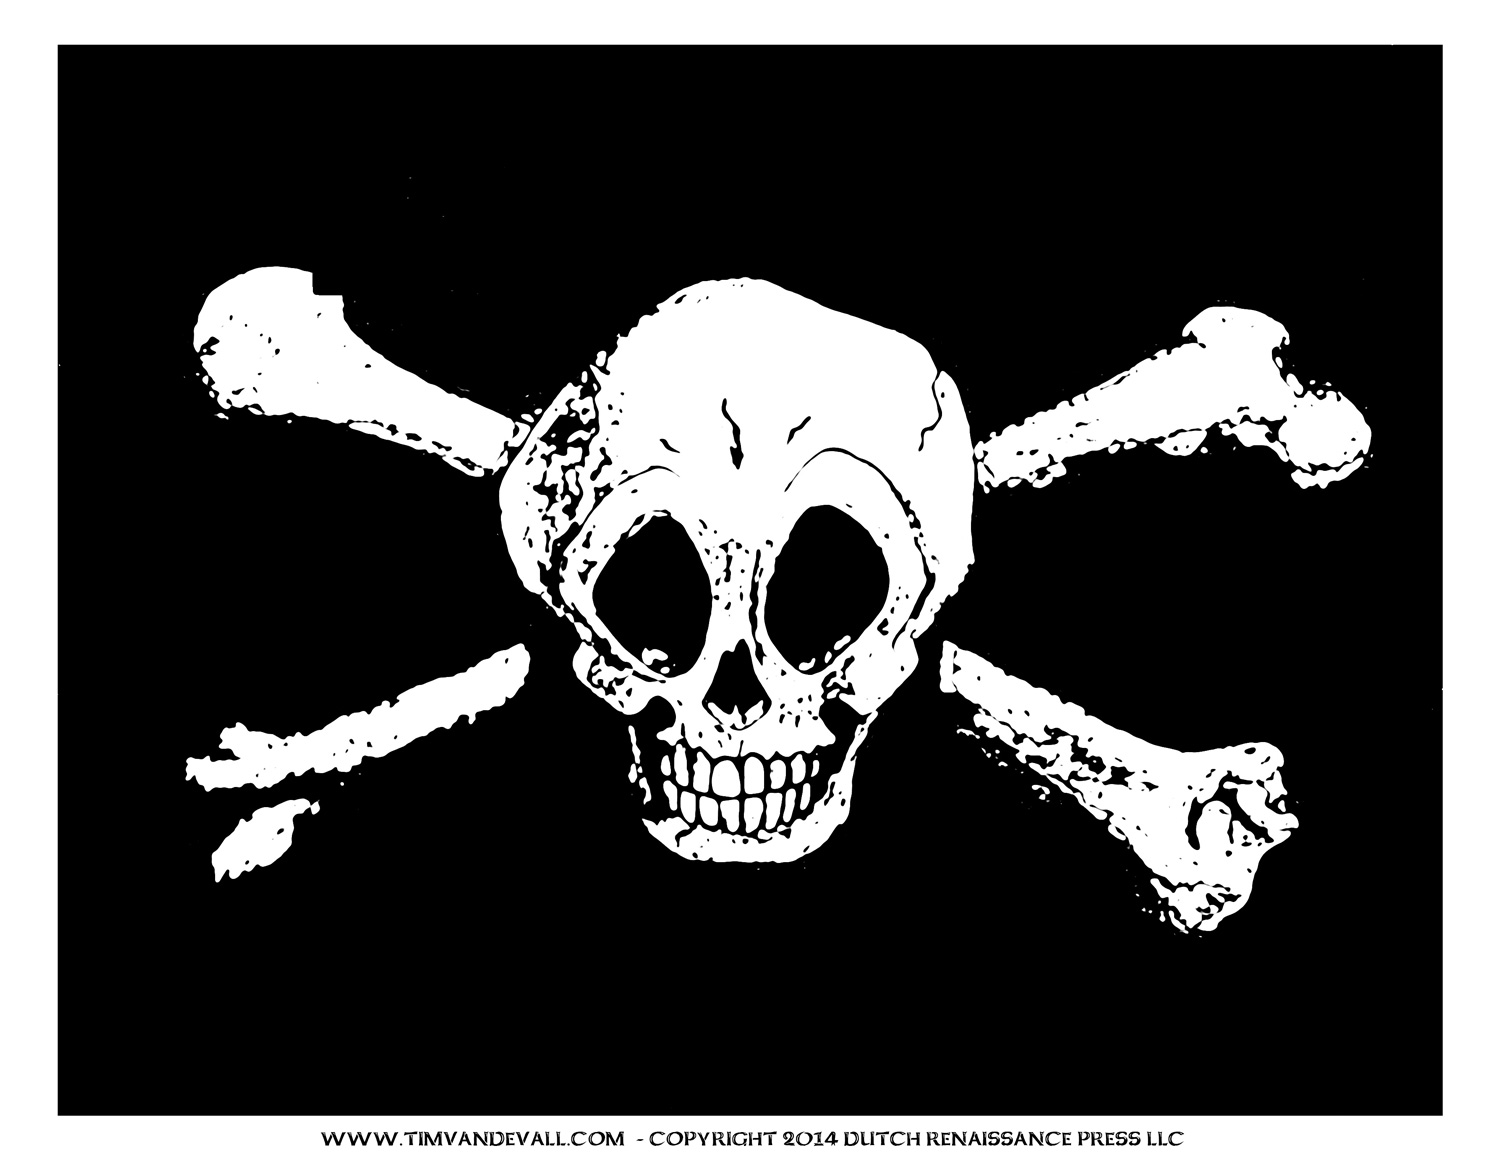 photo relating to Pirate Flag Printable named Jolly Roger Pirate Flag Printable for a Pirate Birthday Bash!